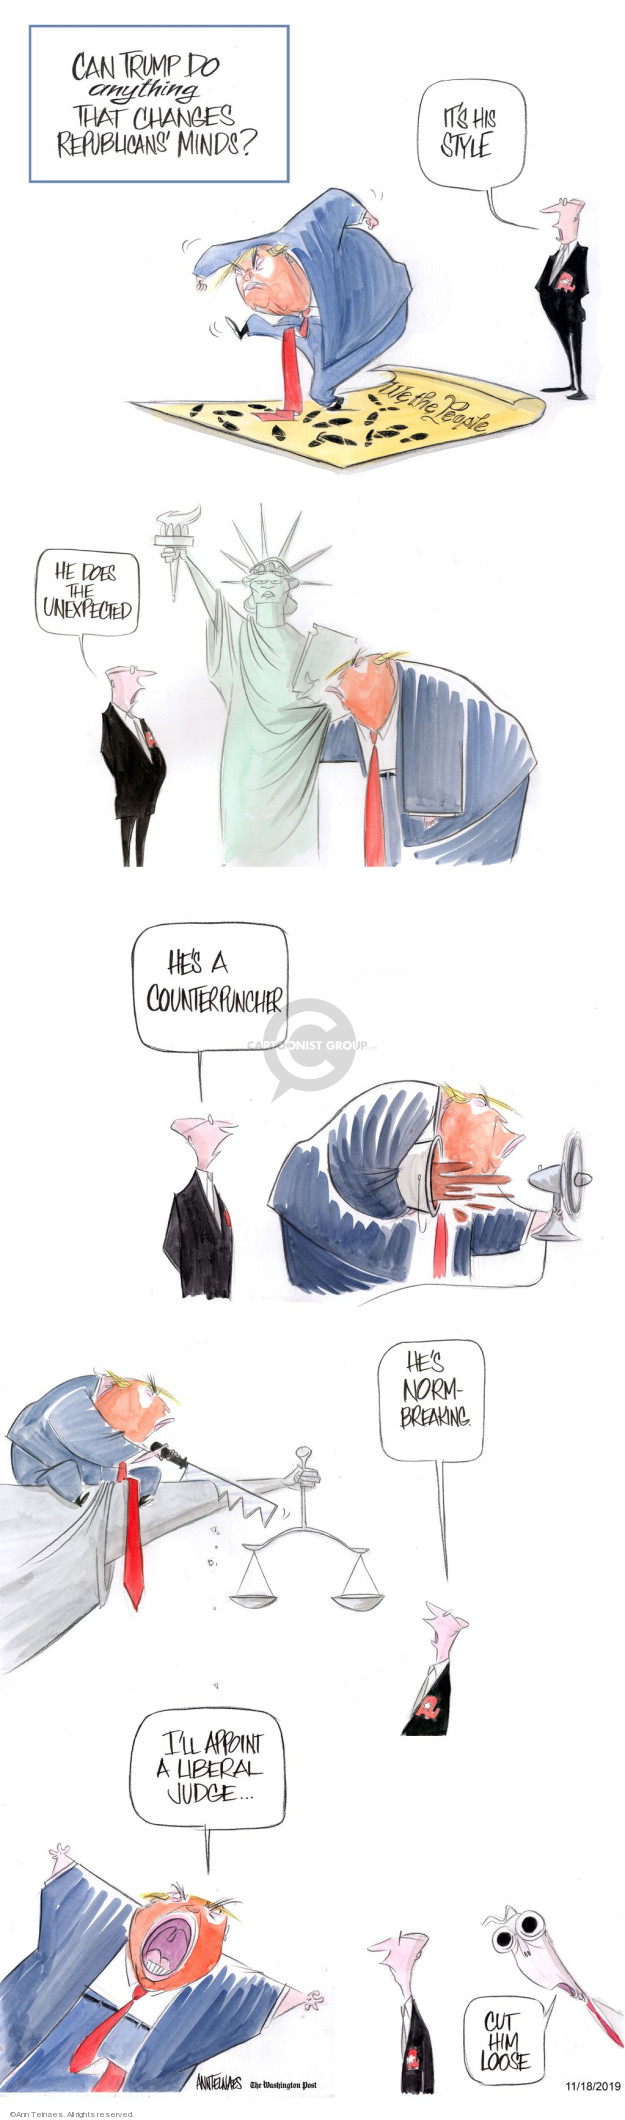 Ann Telnaes  Ann Telnaes' Editorial Cartoons 2019-11-18 people